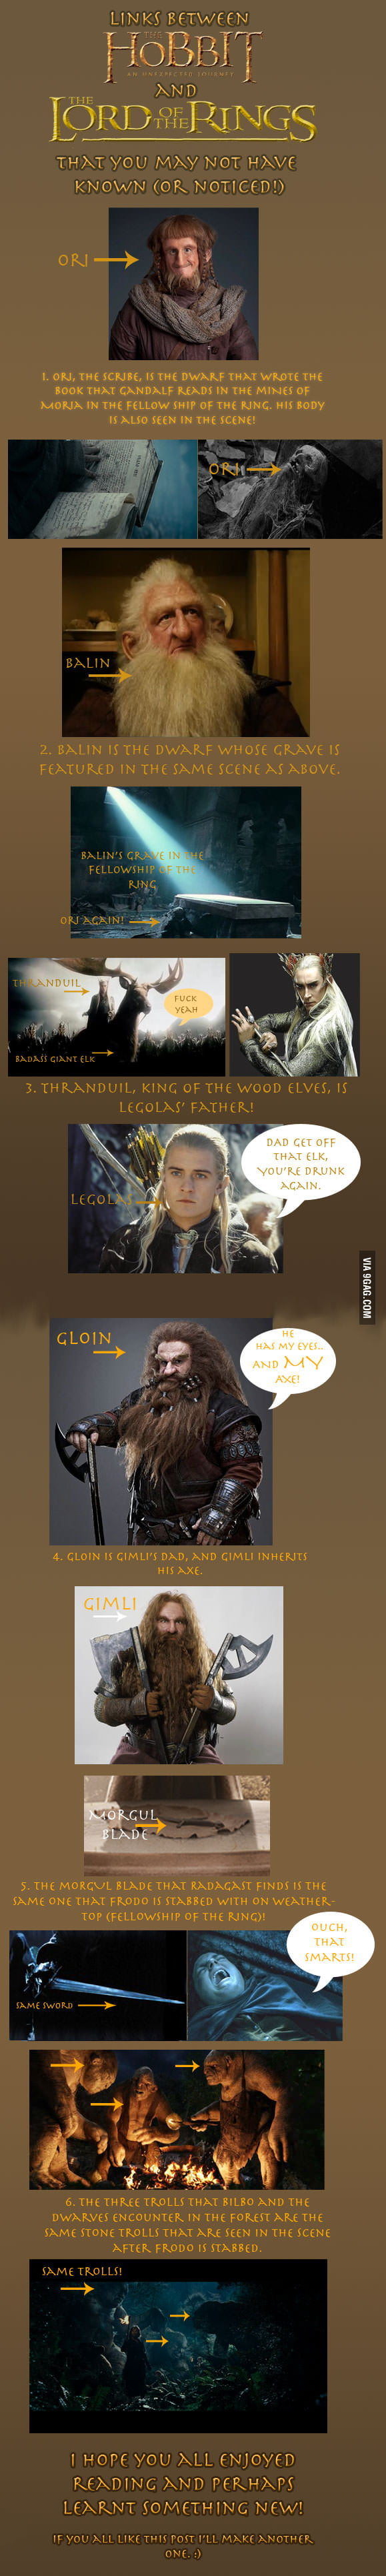 For all the LOTR and Hobbit fans! WARNING, SPOILERS!